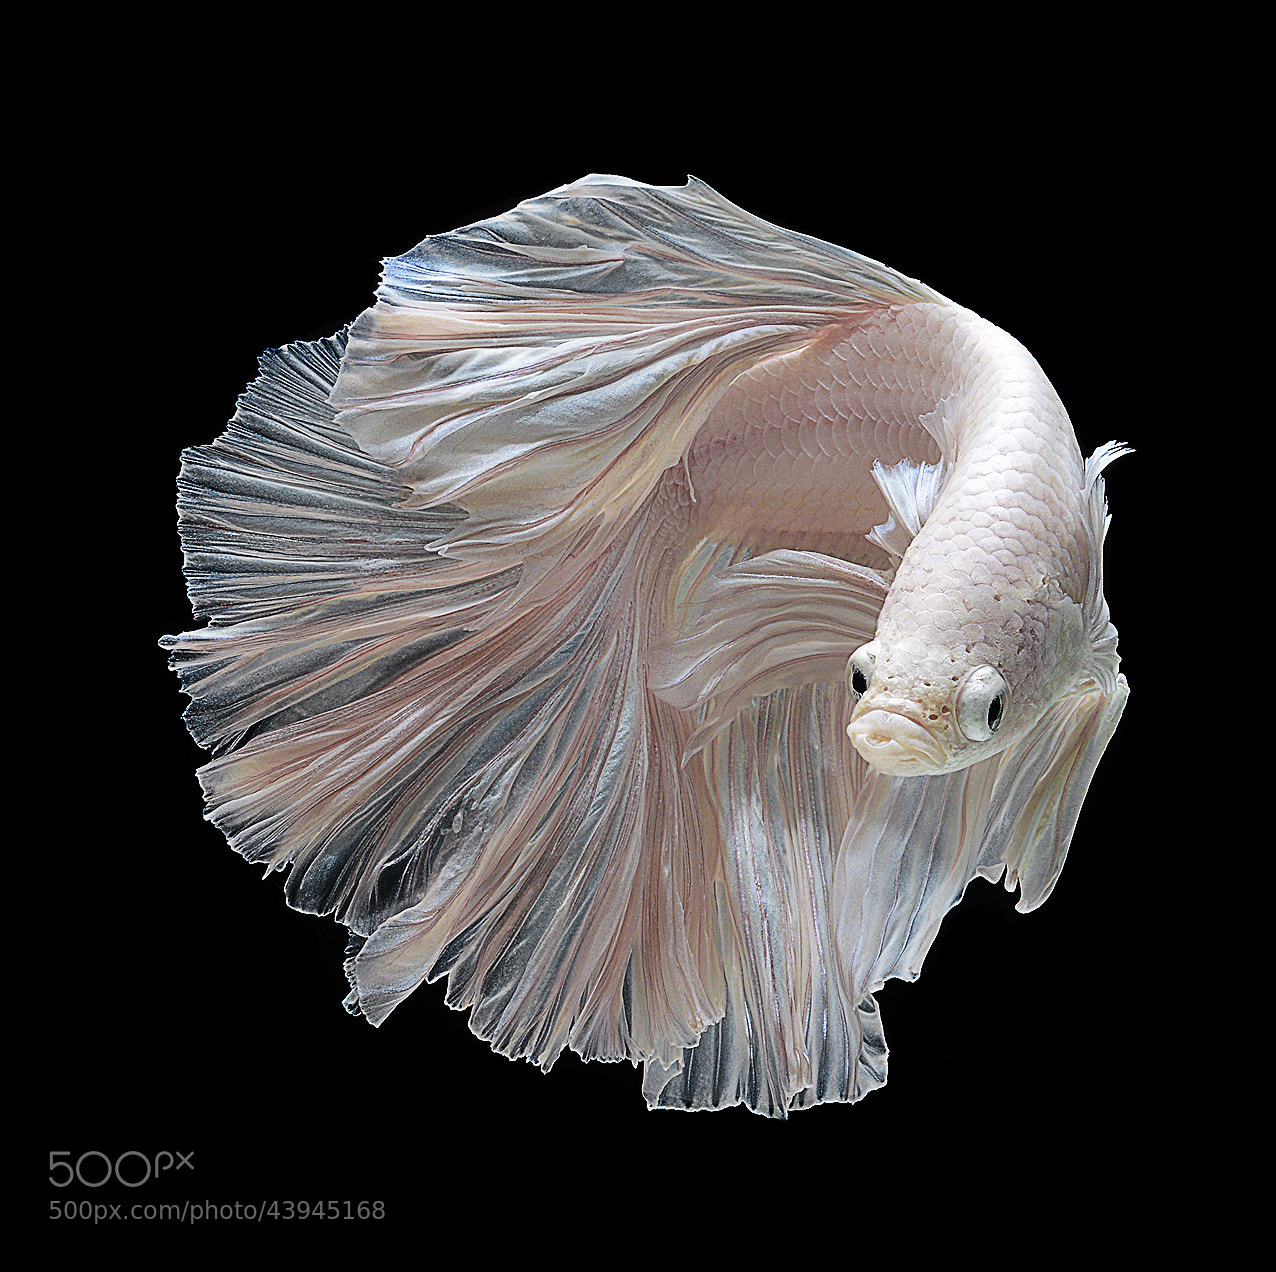 1000+ images about Betta fish on Pinterest | Betta fish ...